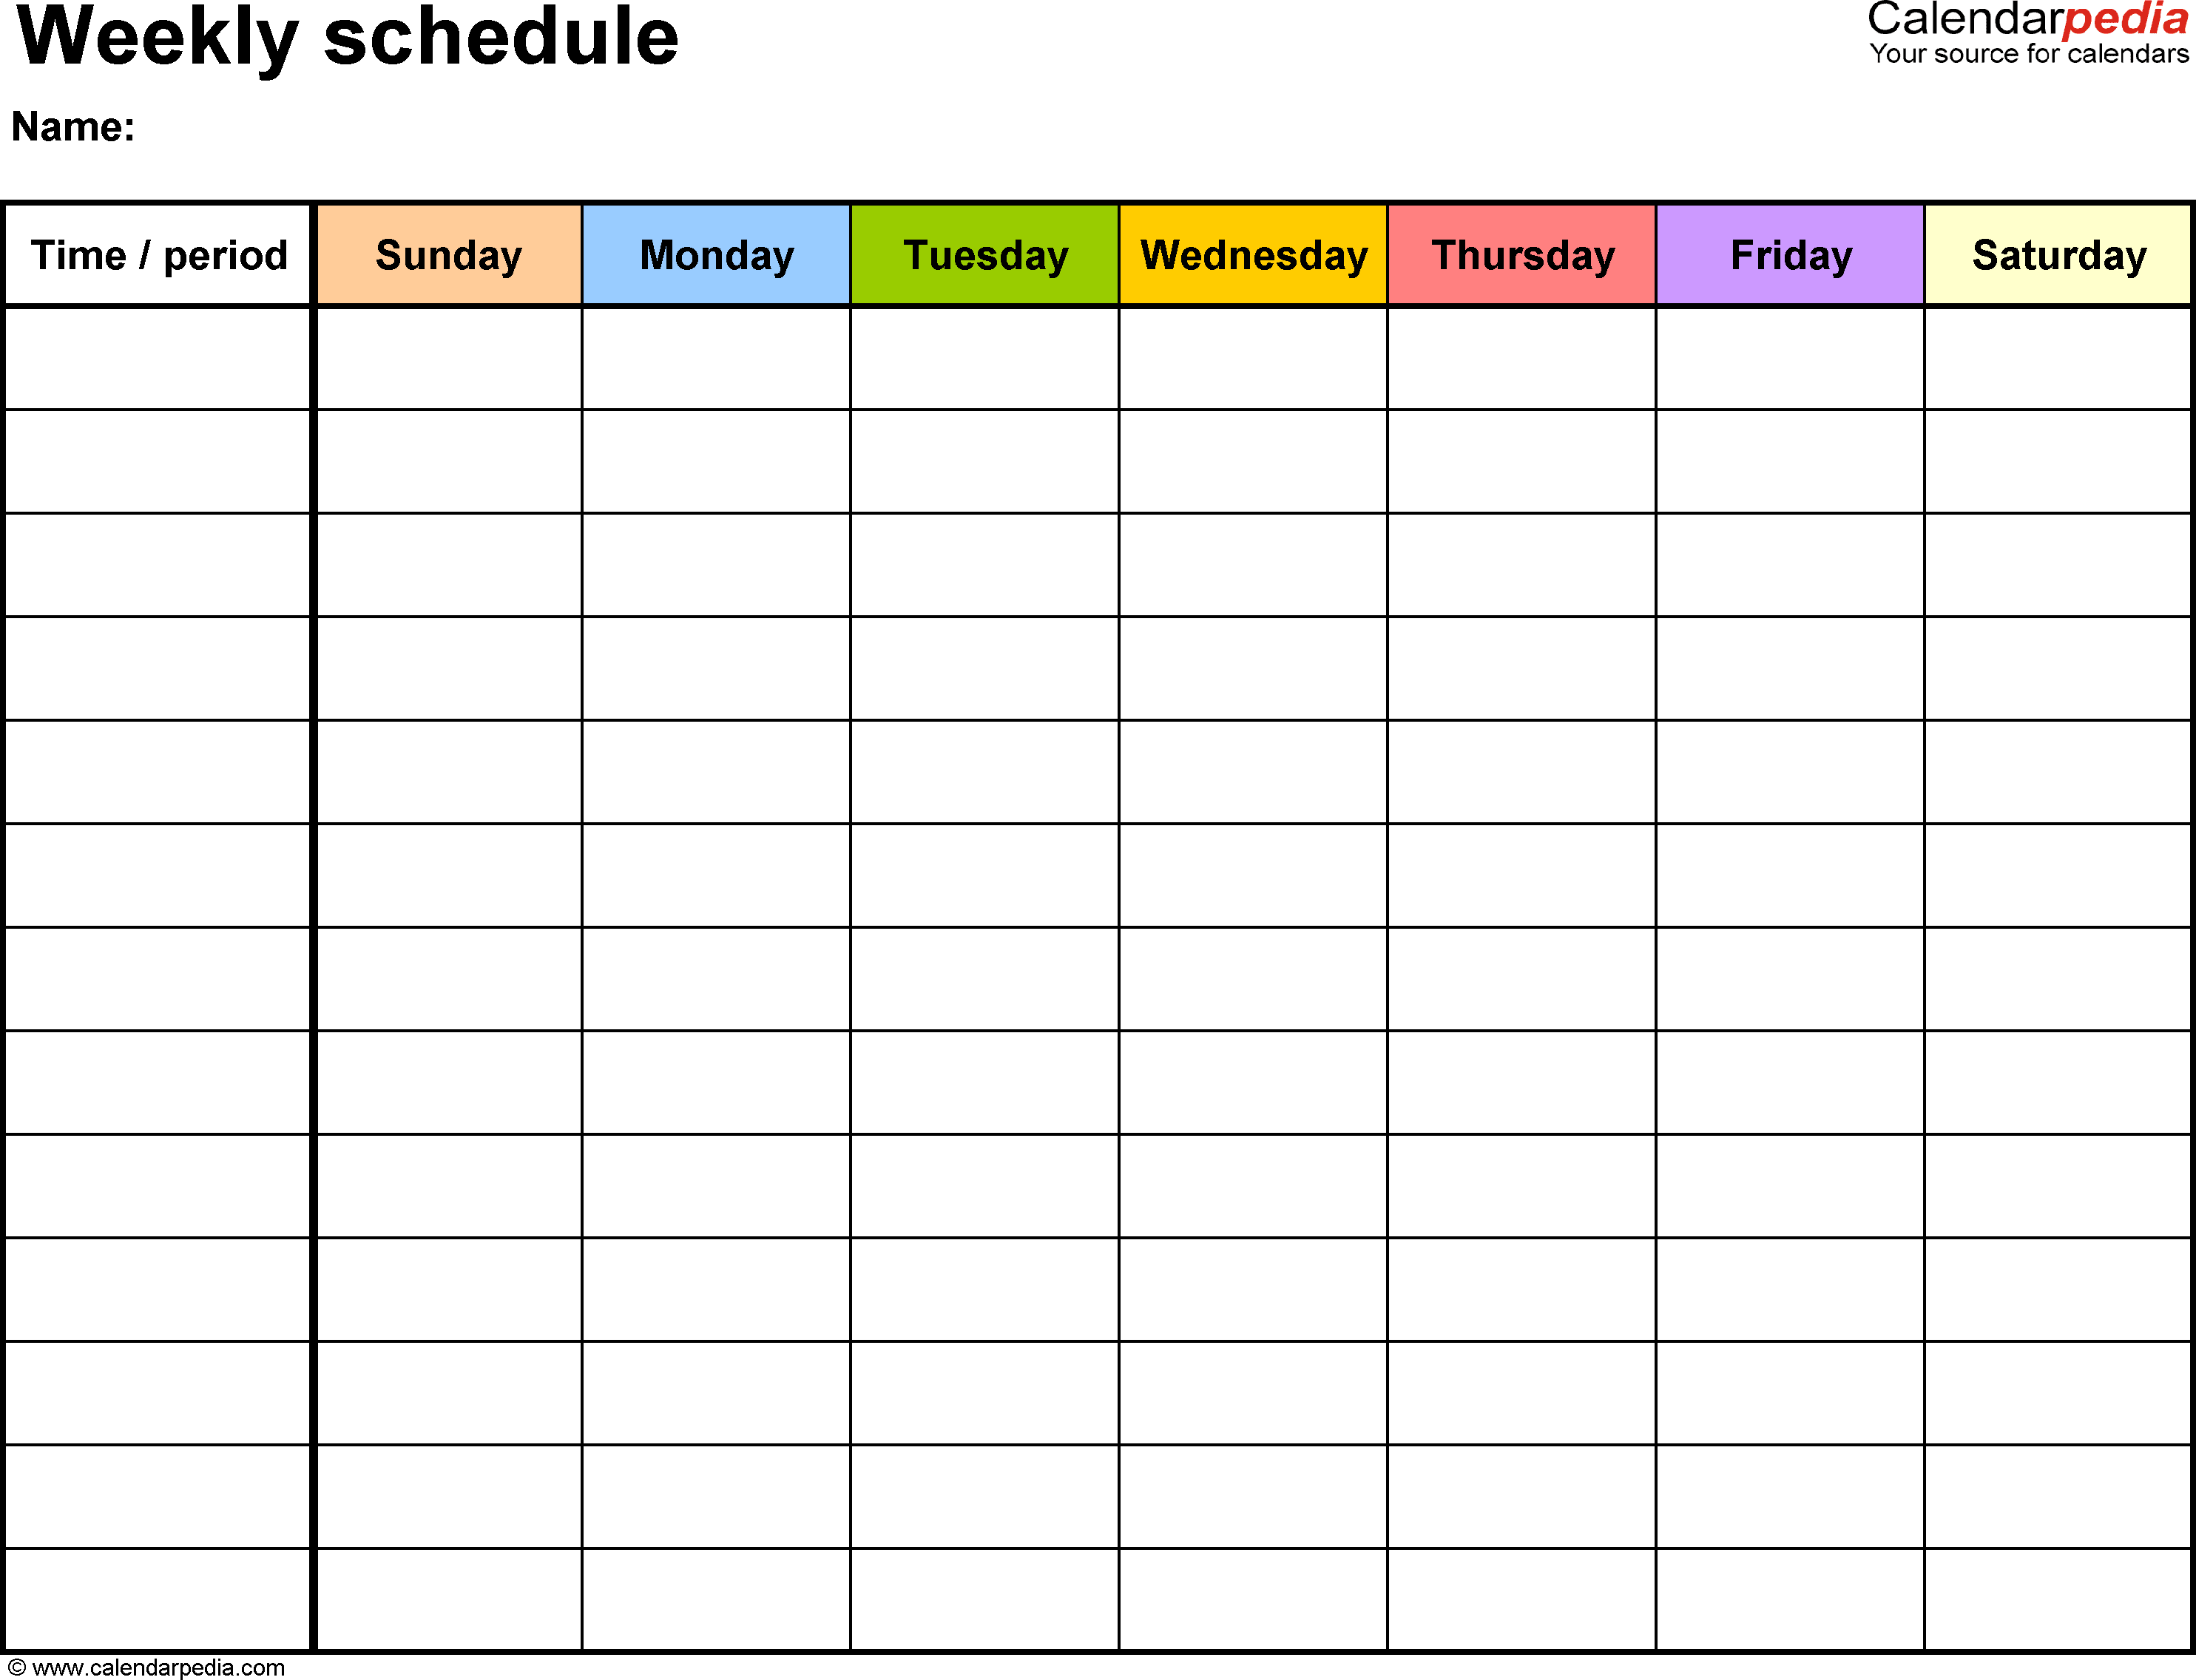 Weekly Schedule Planning Template